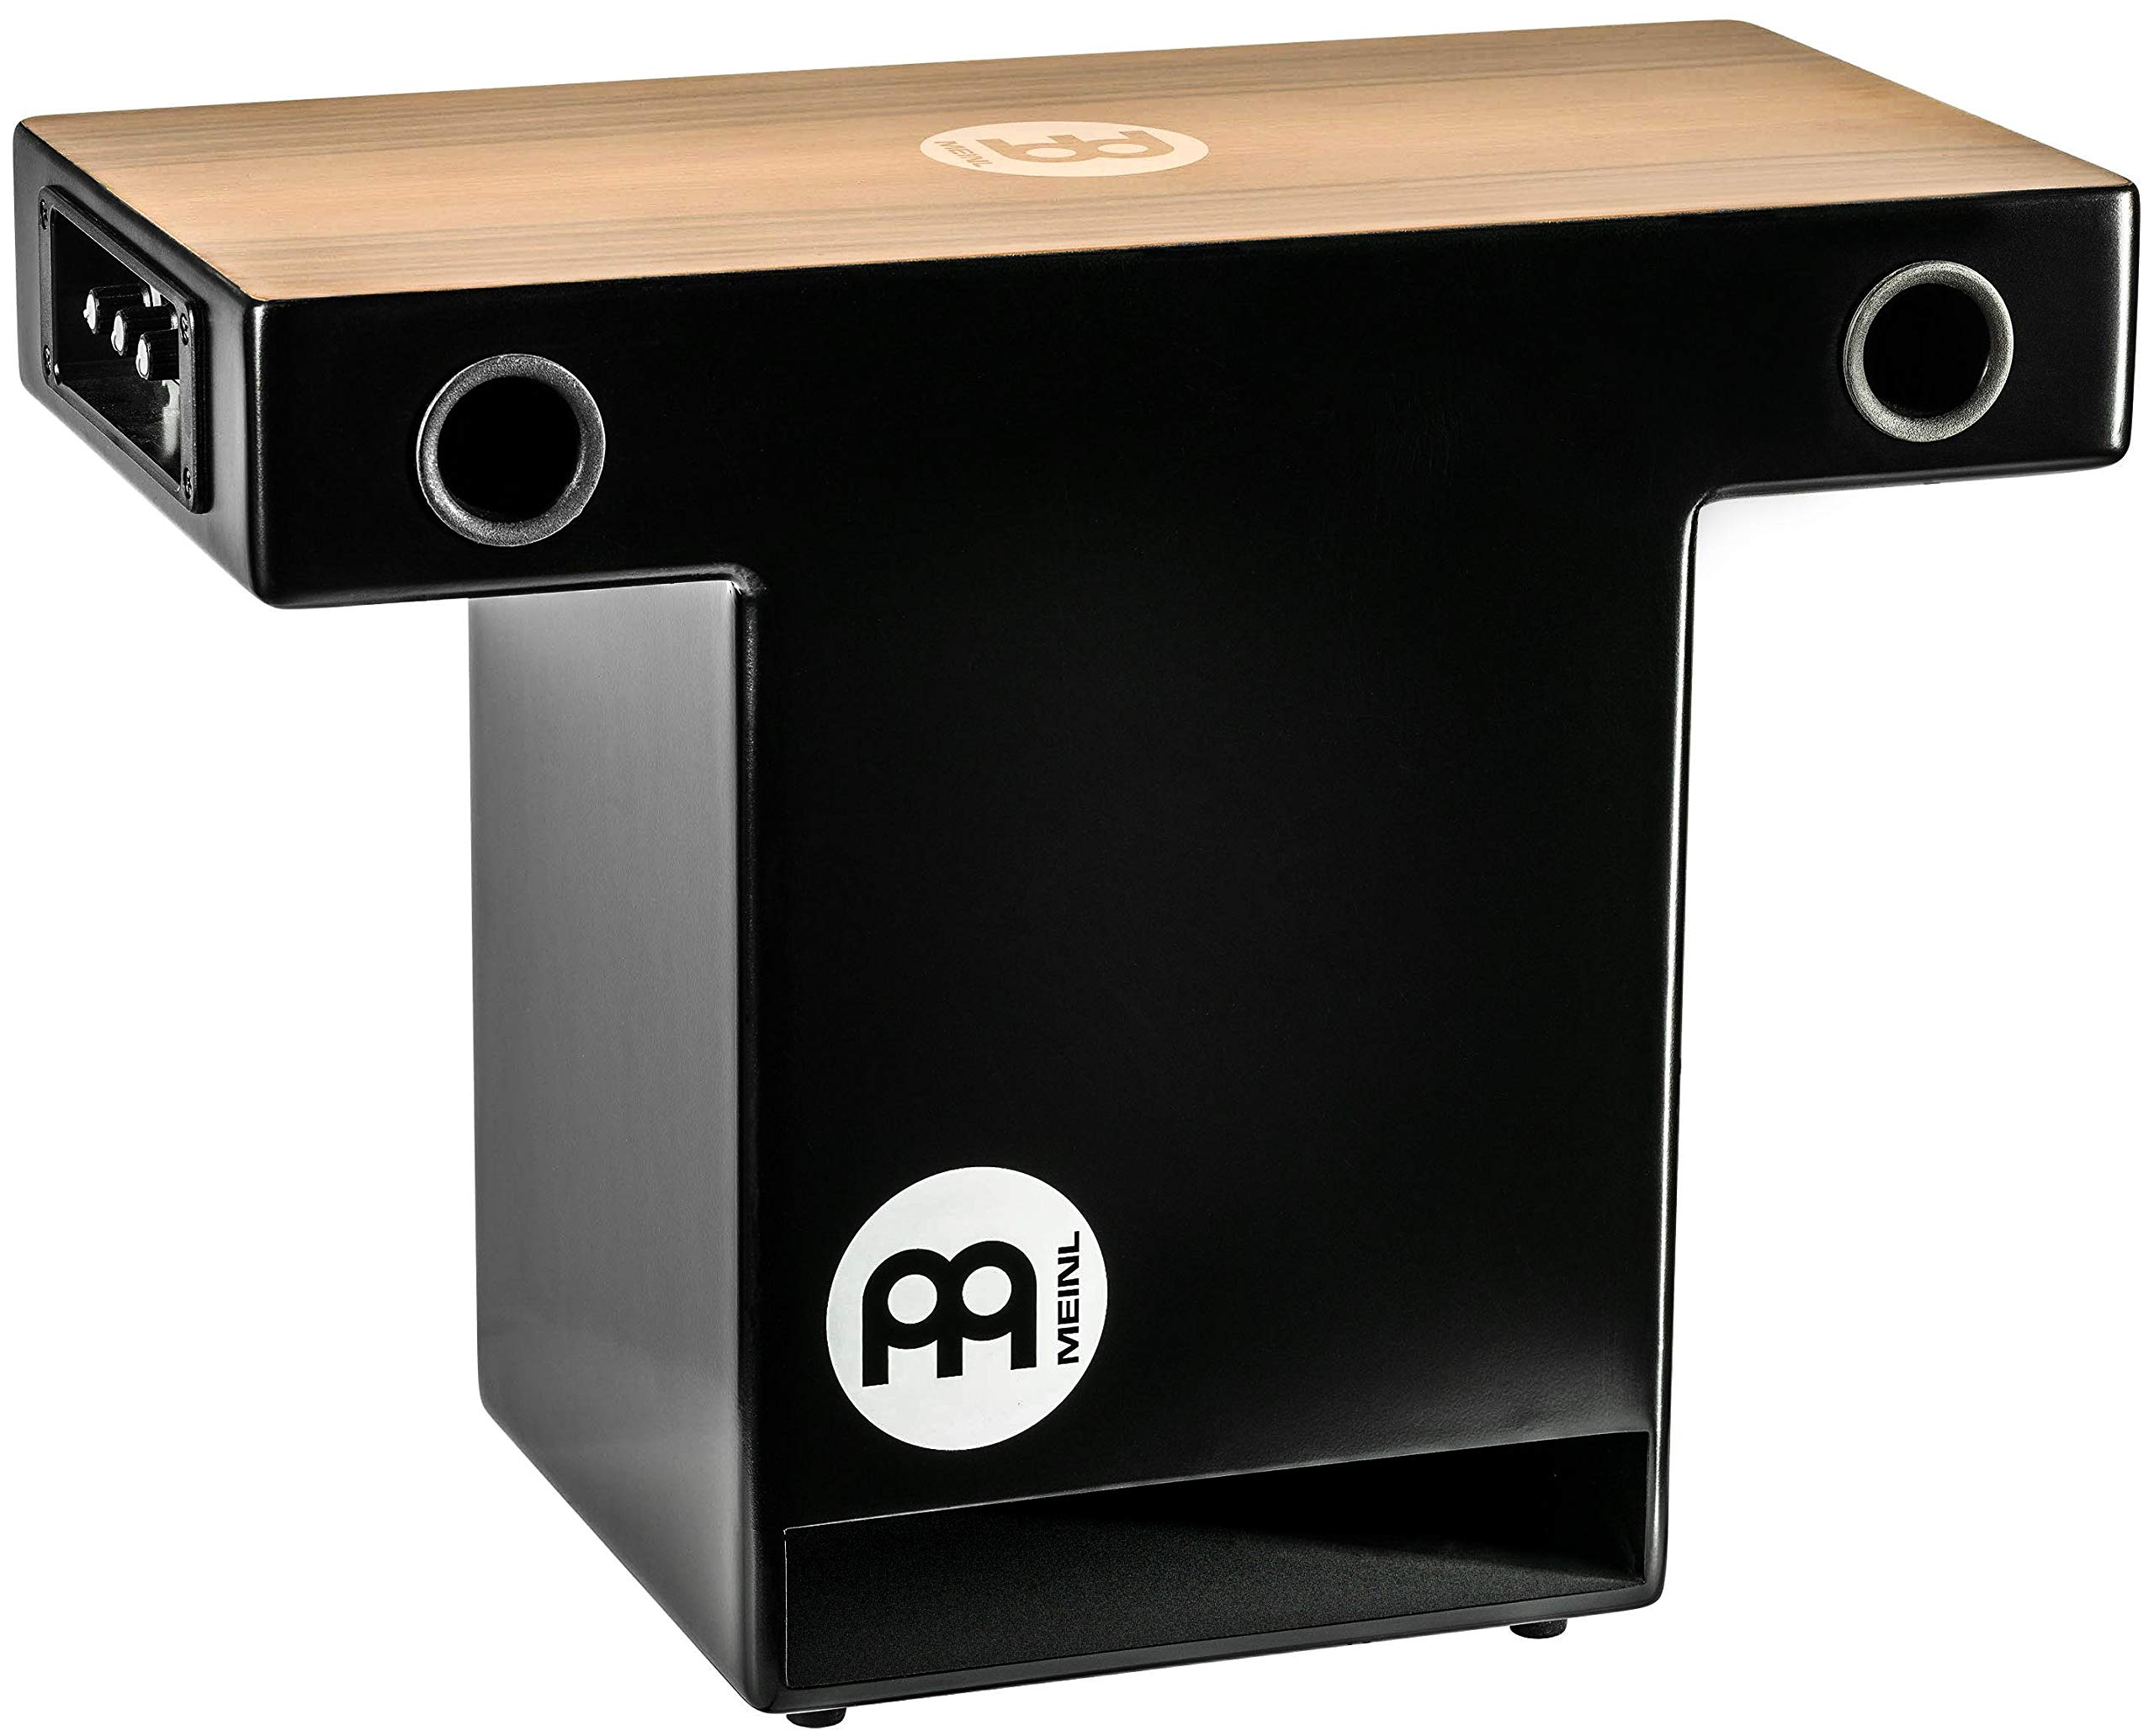 Meinl Pickup Slaptop Cajon Box Drum with Internal Snares and Forward Projecting Sound Ports -NOT MADE IN CHINA - Walnut Playing Surface, 2-YEAR WARRANTY (PTOPCAJ2WN) by Meinl Percussion